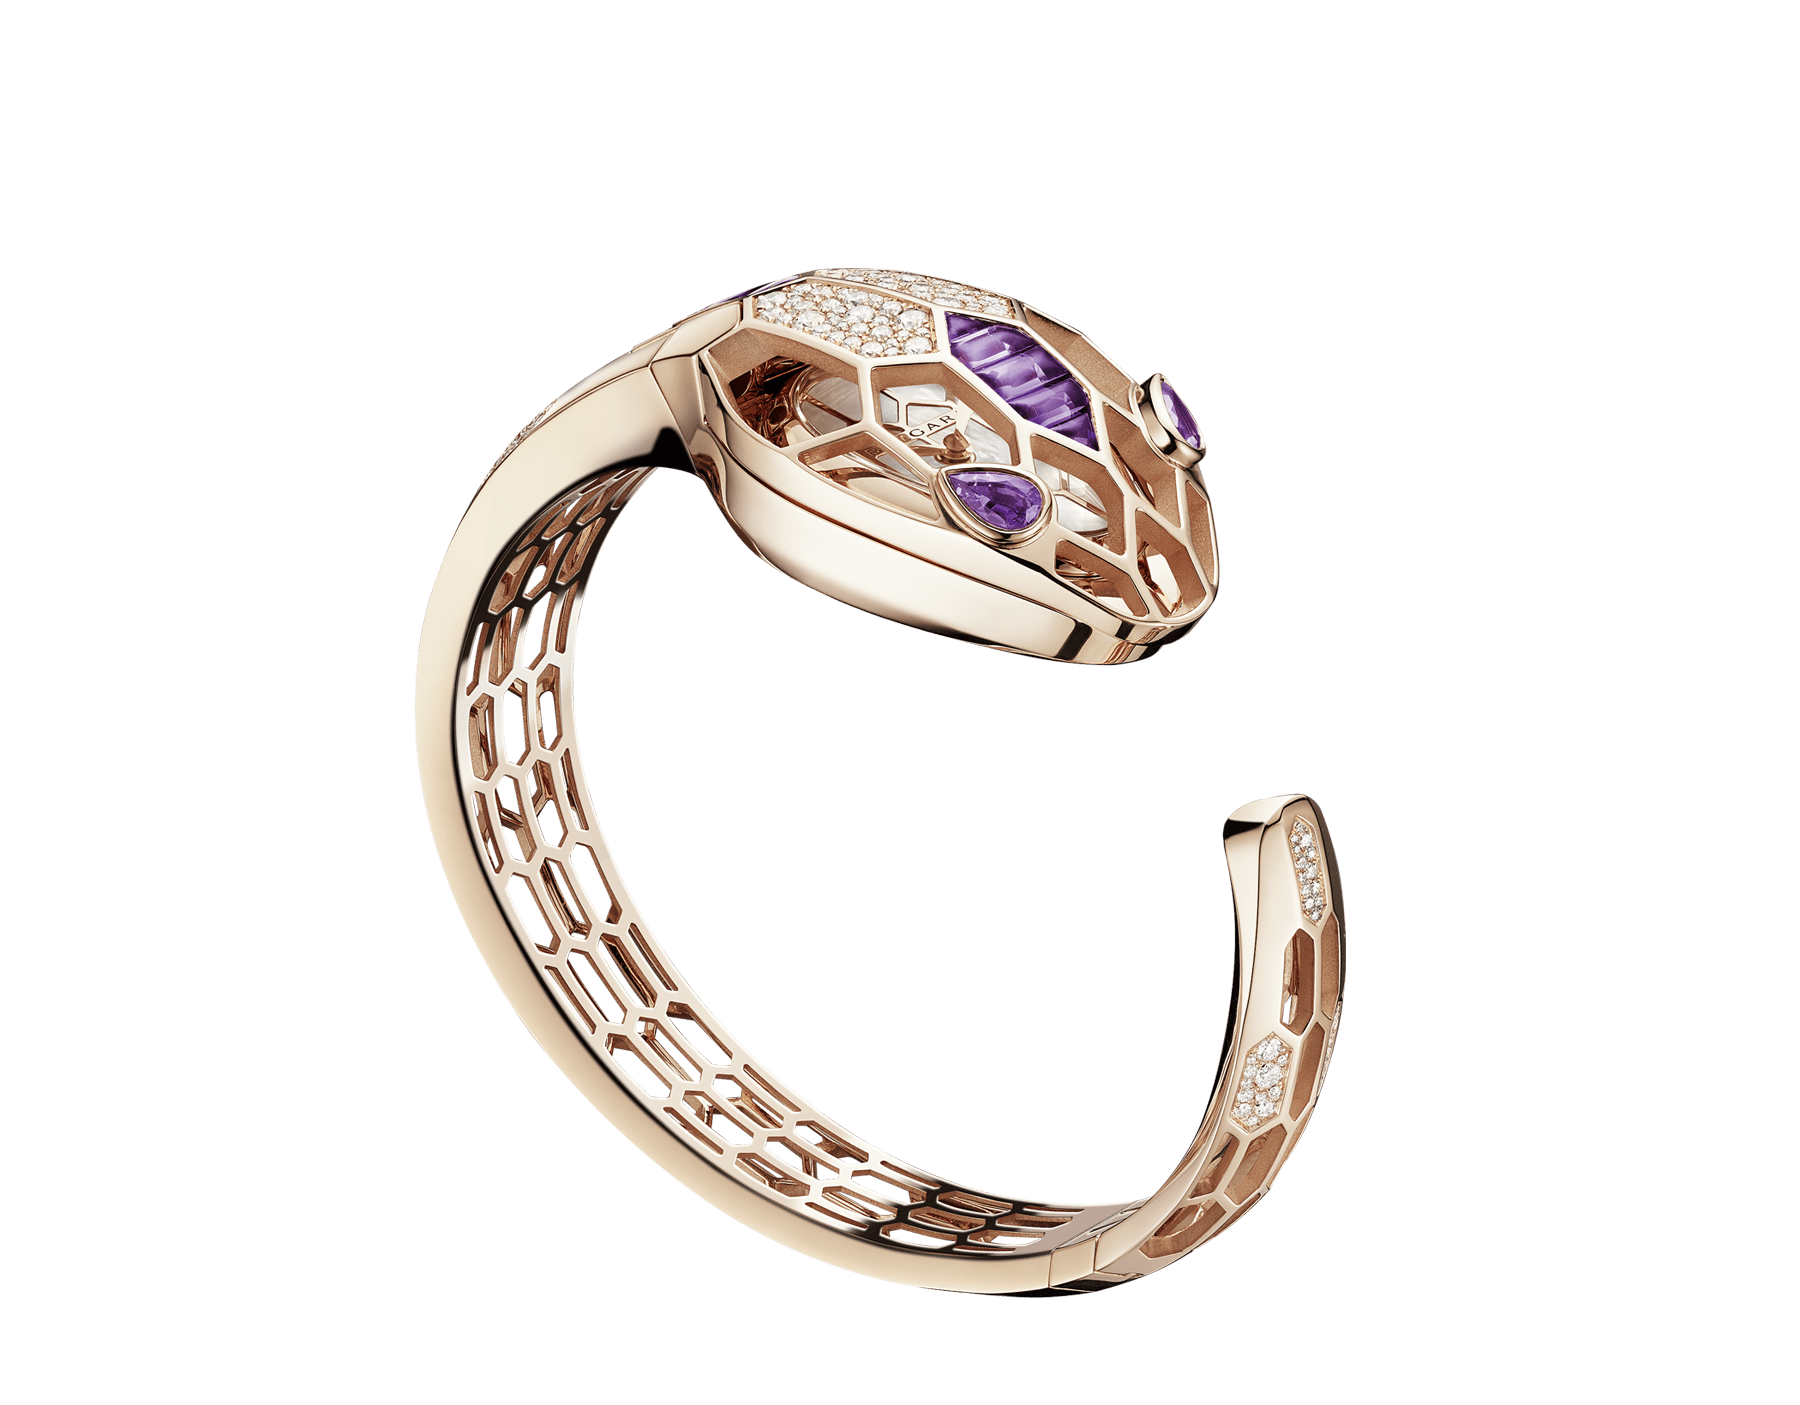 Serpenti Misteriosi Secret Watch in 18 kt rose gold case and bracelet both set with round brilliant-cut diamonds and baguette-cut amethysts, mother-of-pearl dial and pear shaped amethyst eyes. Medium size 103056 image 1